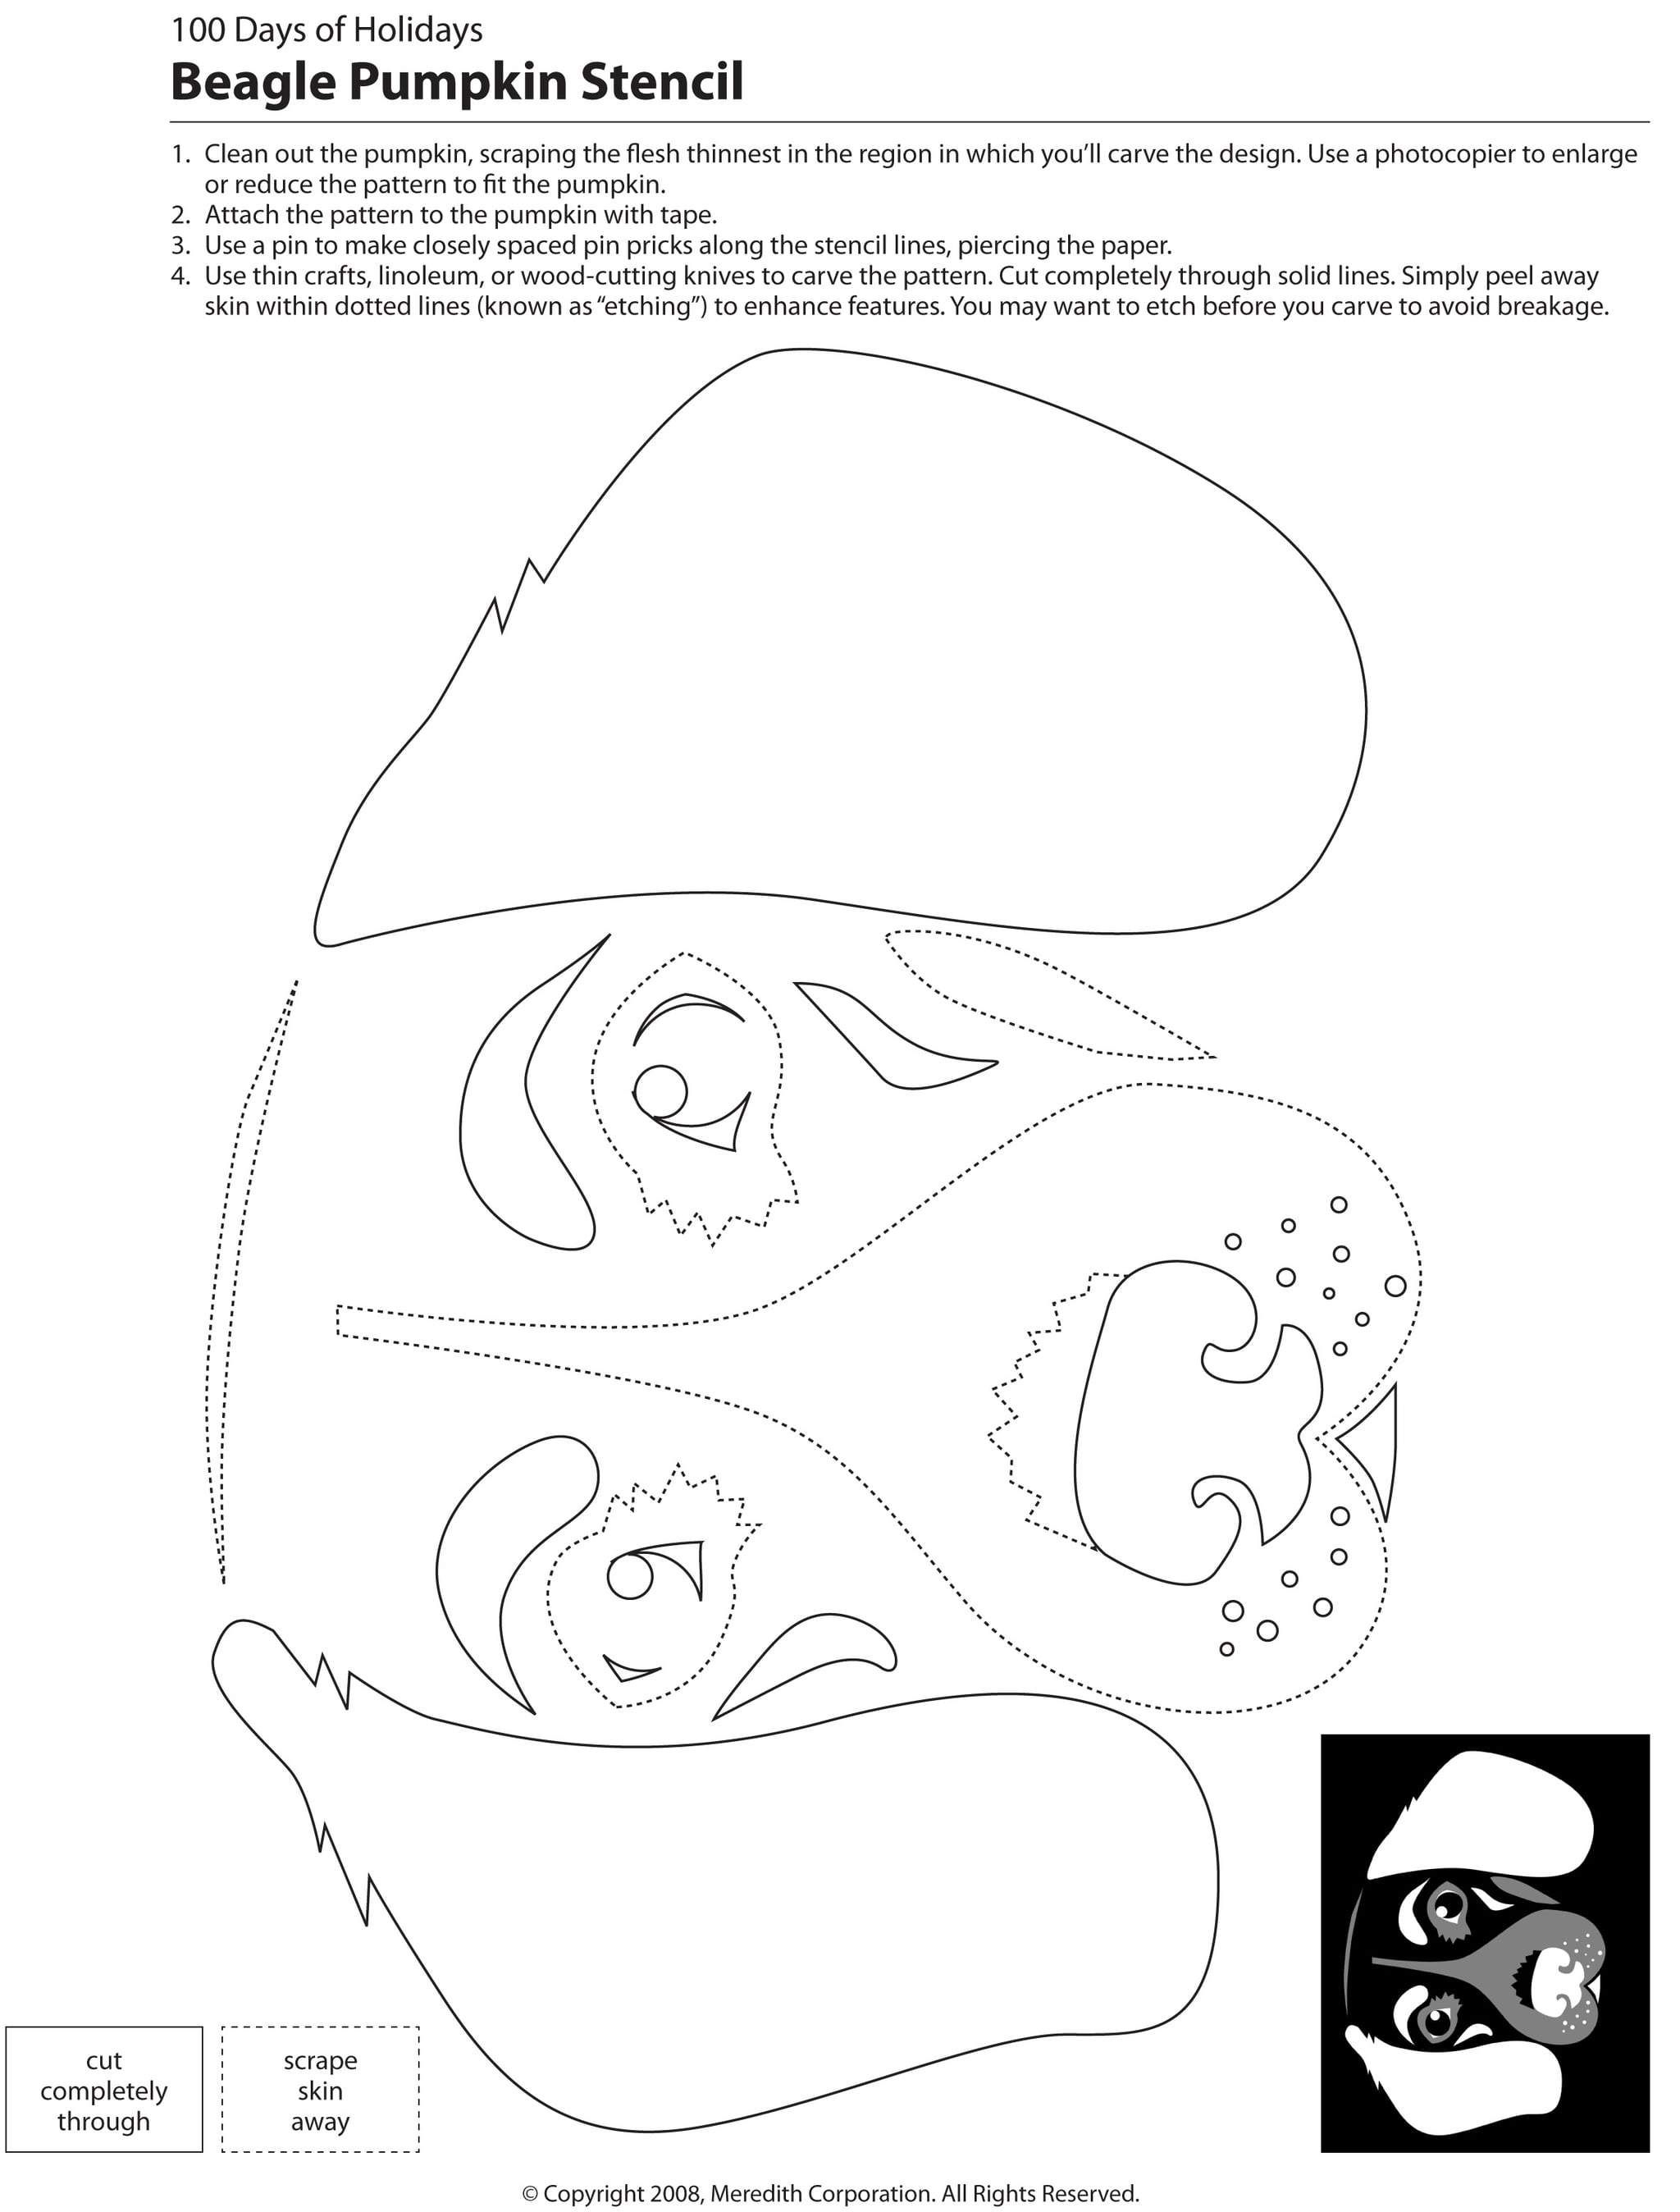 22 Free Pumpkin Carving Dog Stencils (Breed Specific)   Dogs - Free Printable Pumpkin Carving Templates Dog